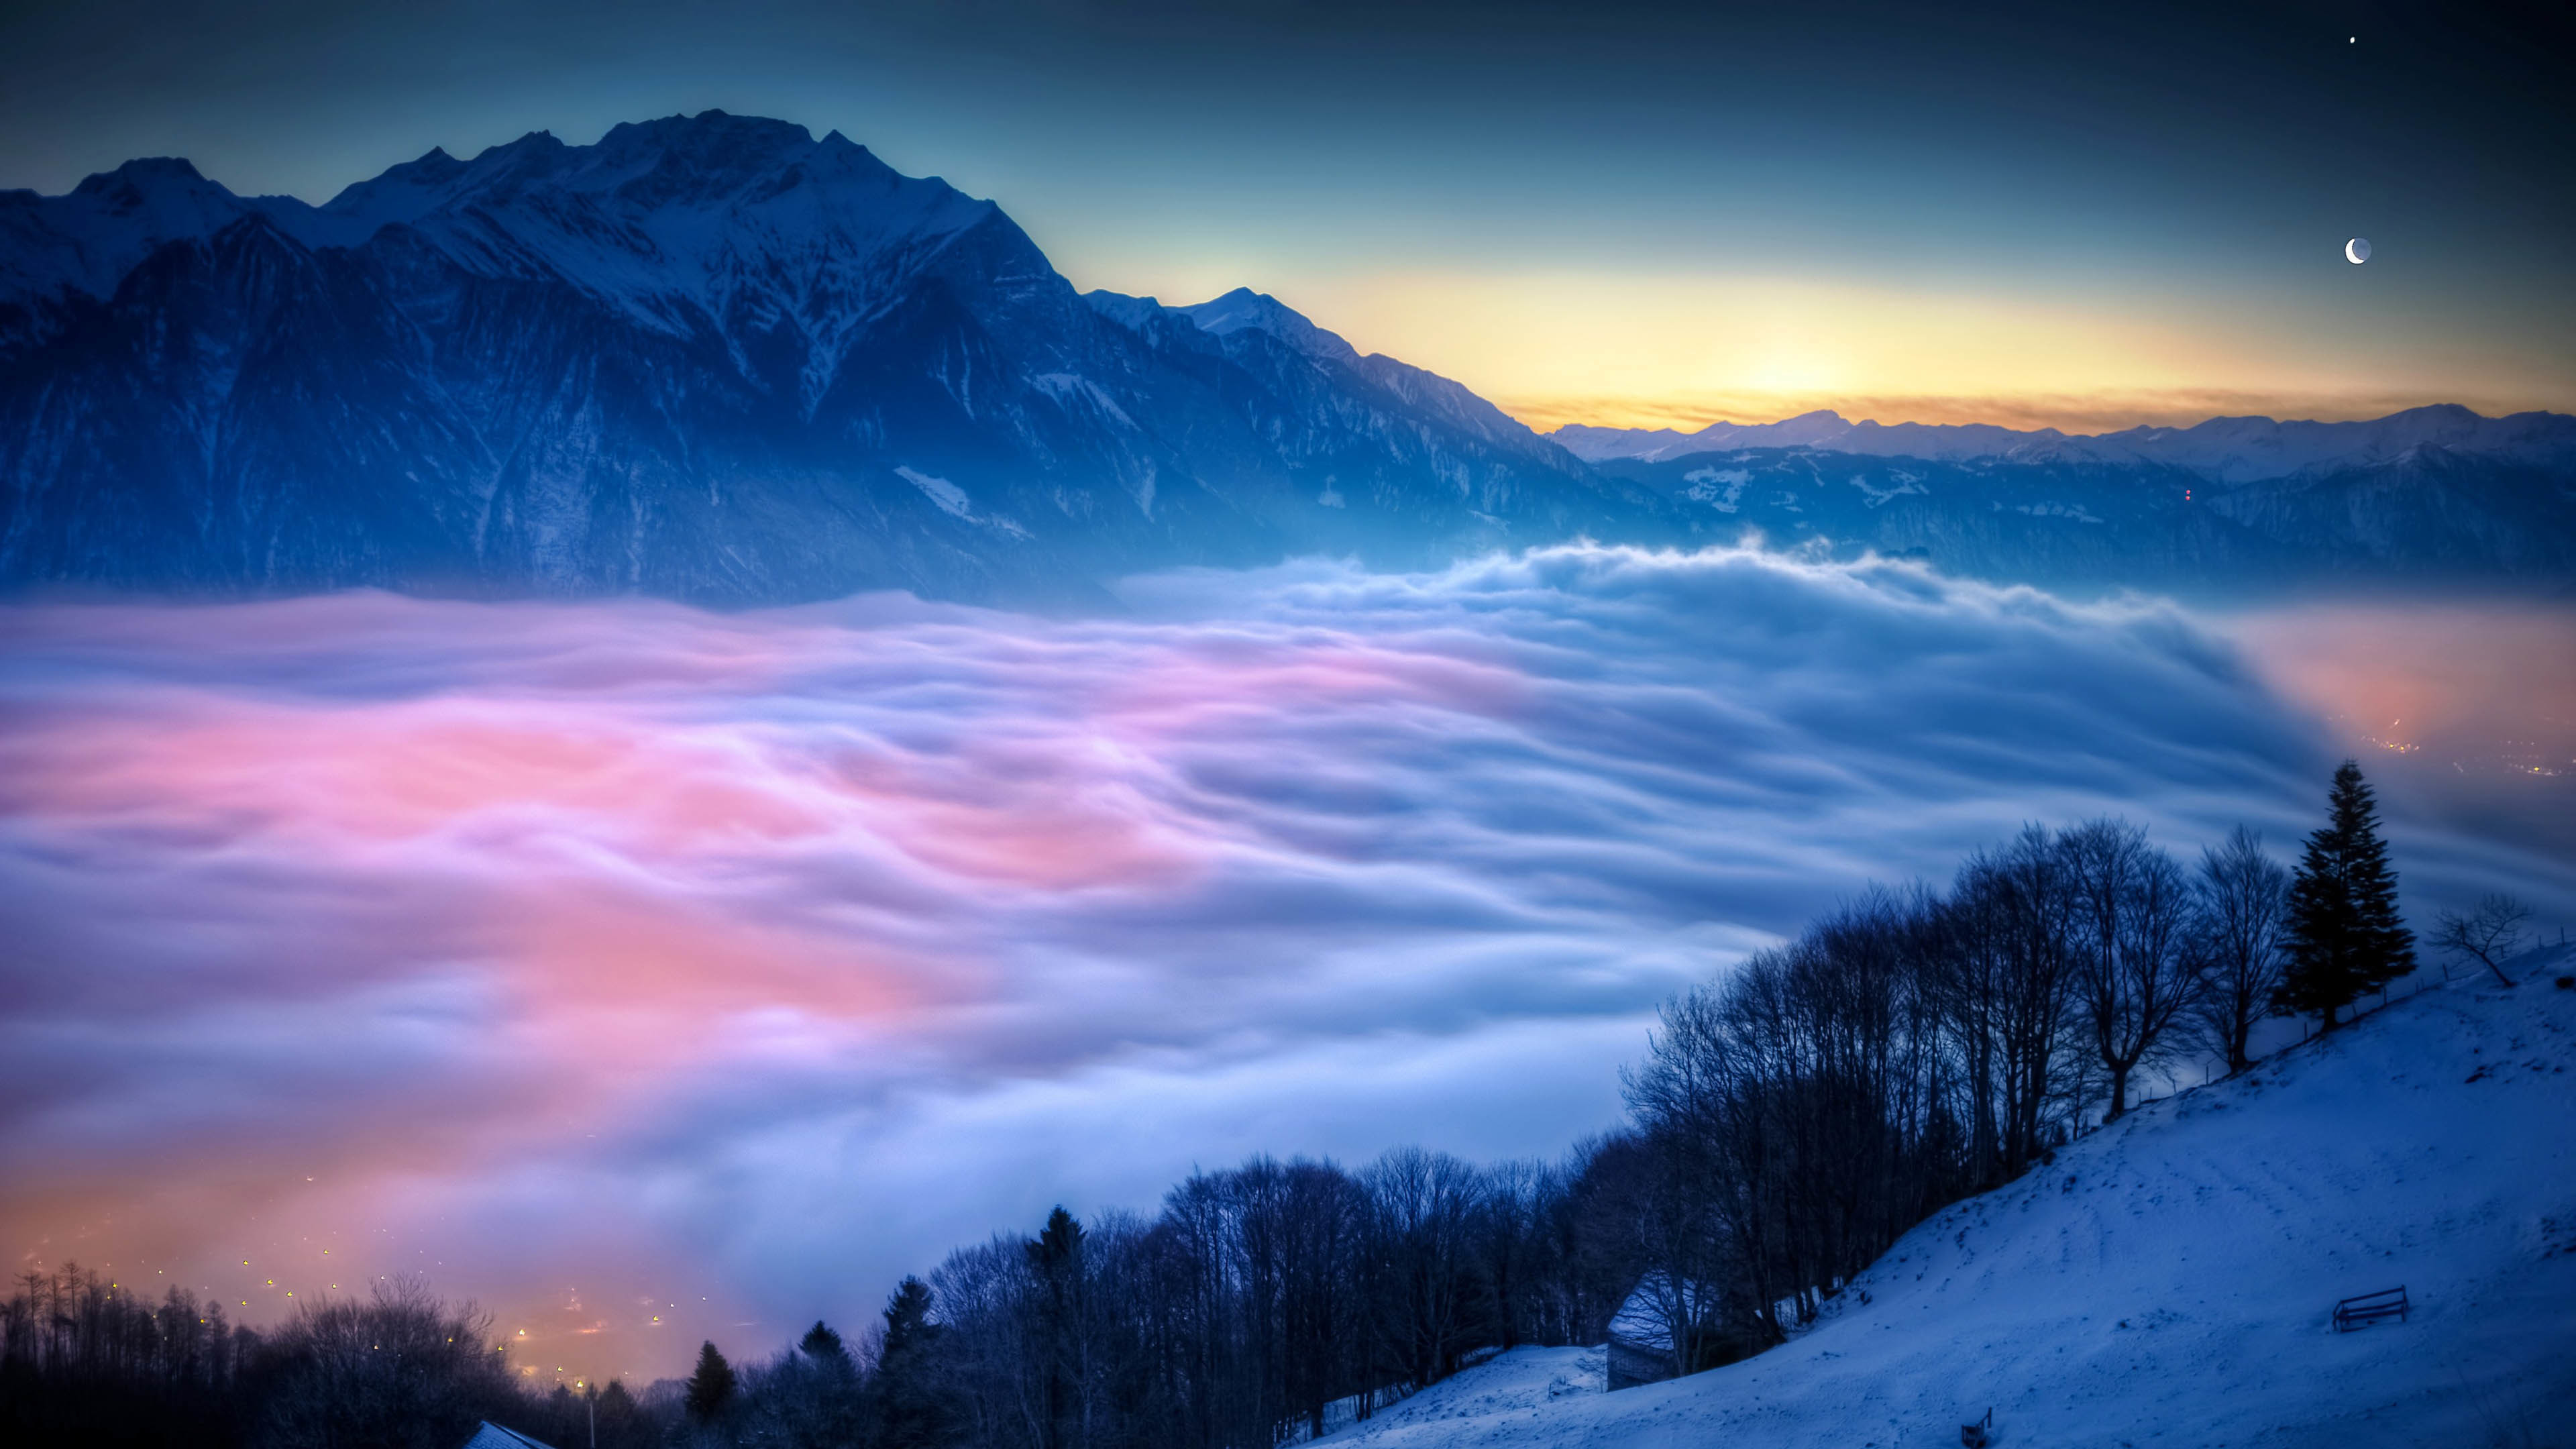 City under the Fog & Mountains at Sunrise wallpaper